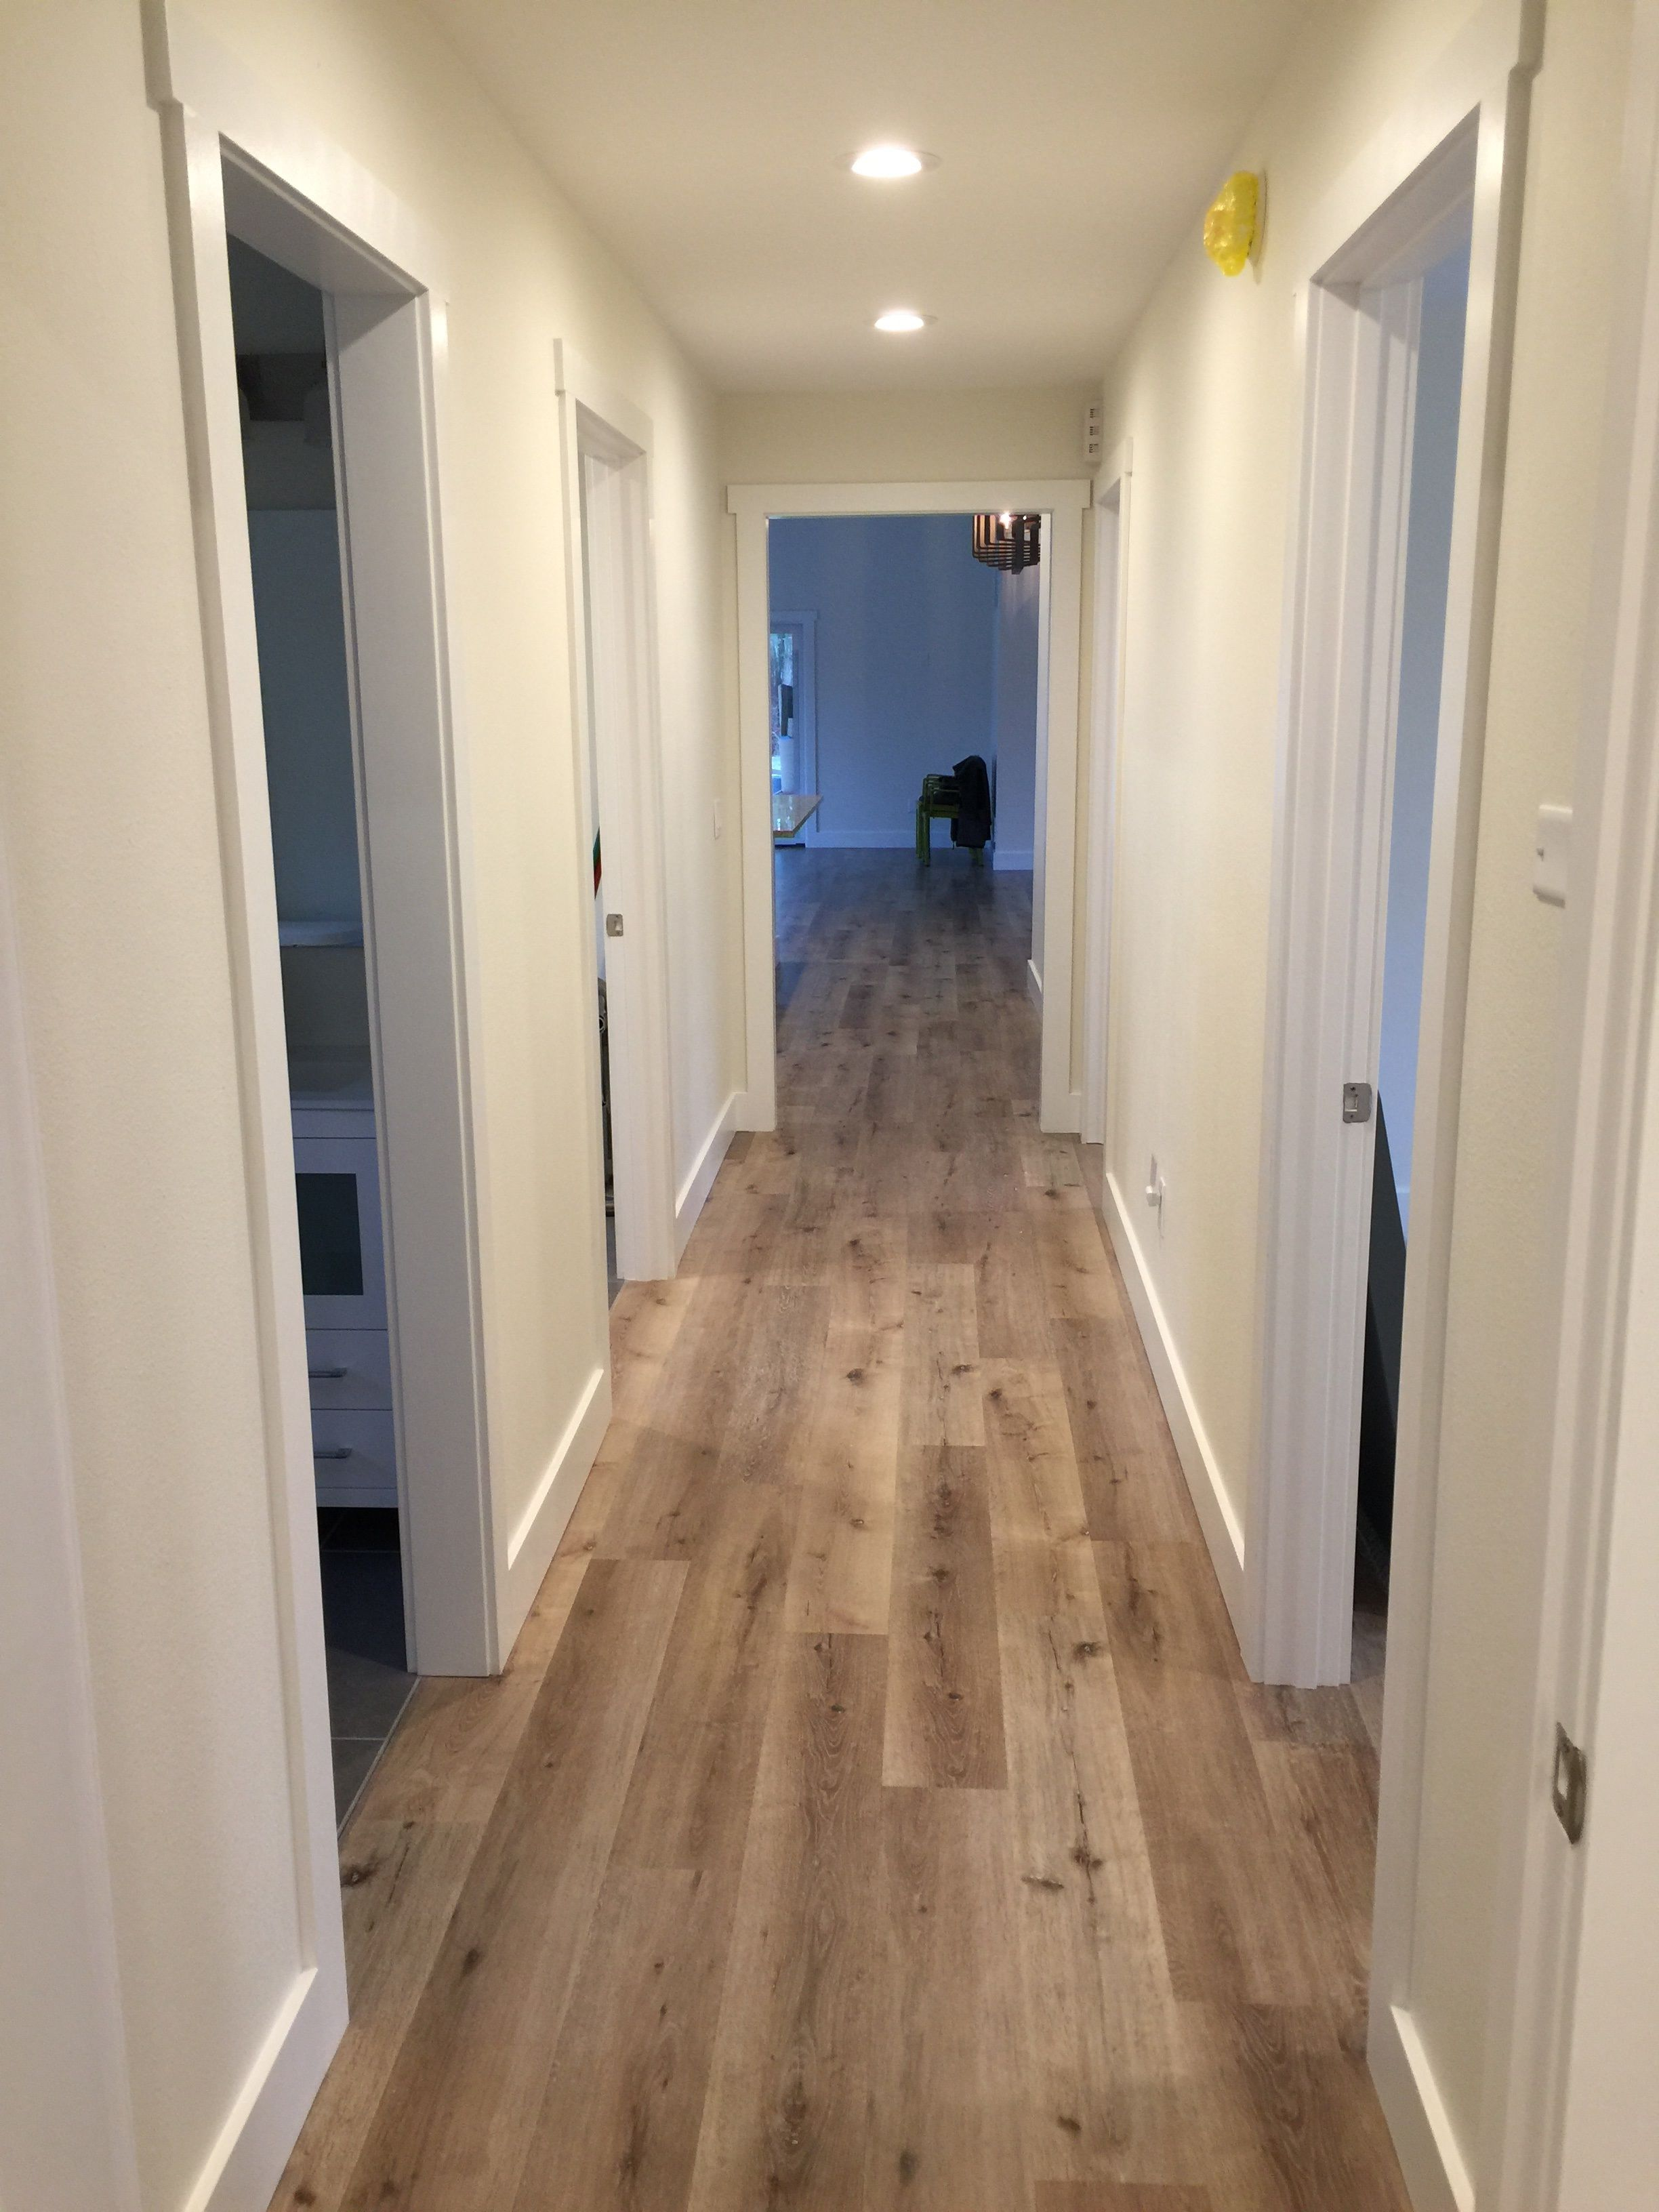 Aged Hickory Vinyl Waterproof Flooring Waterproof Flooring Flooring Vinyl Wood Planks